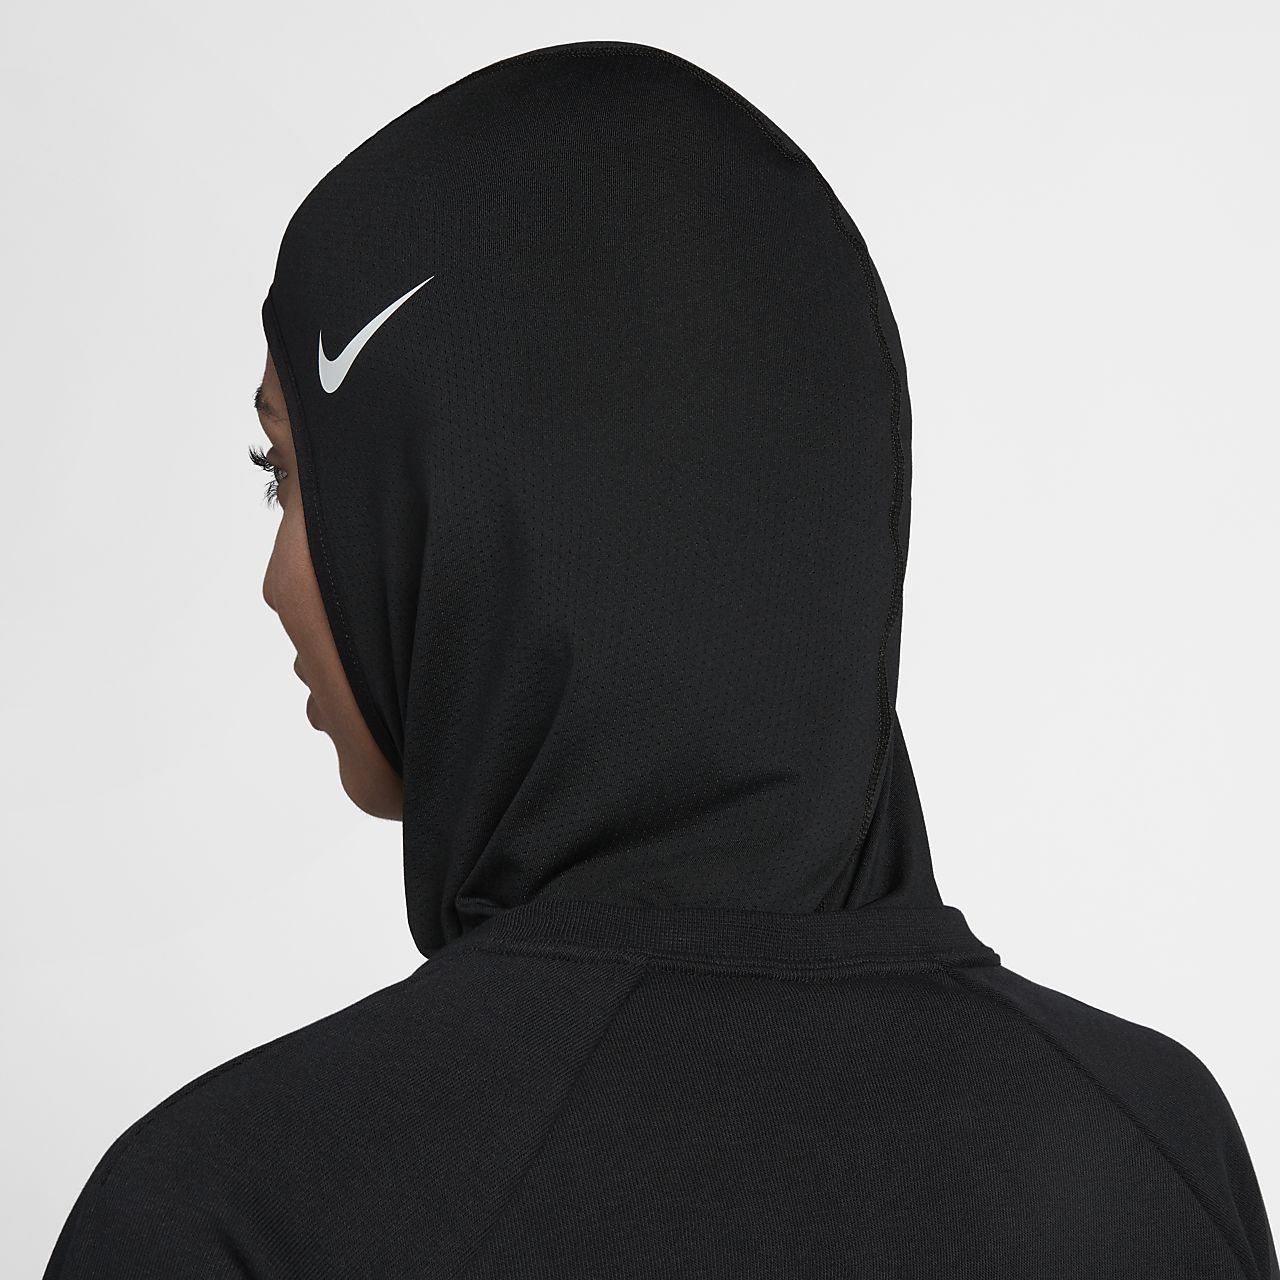 newest collection af010 66cad Low Resolution Nike Pro Women s Hijab Nike Pro Women s Hijab